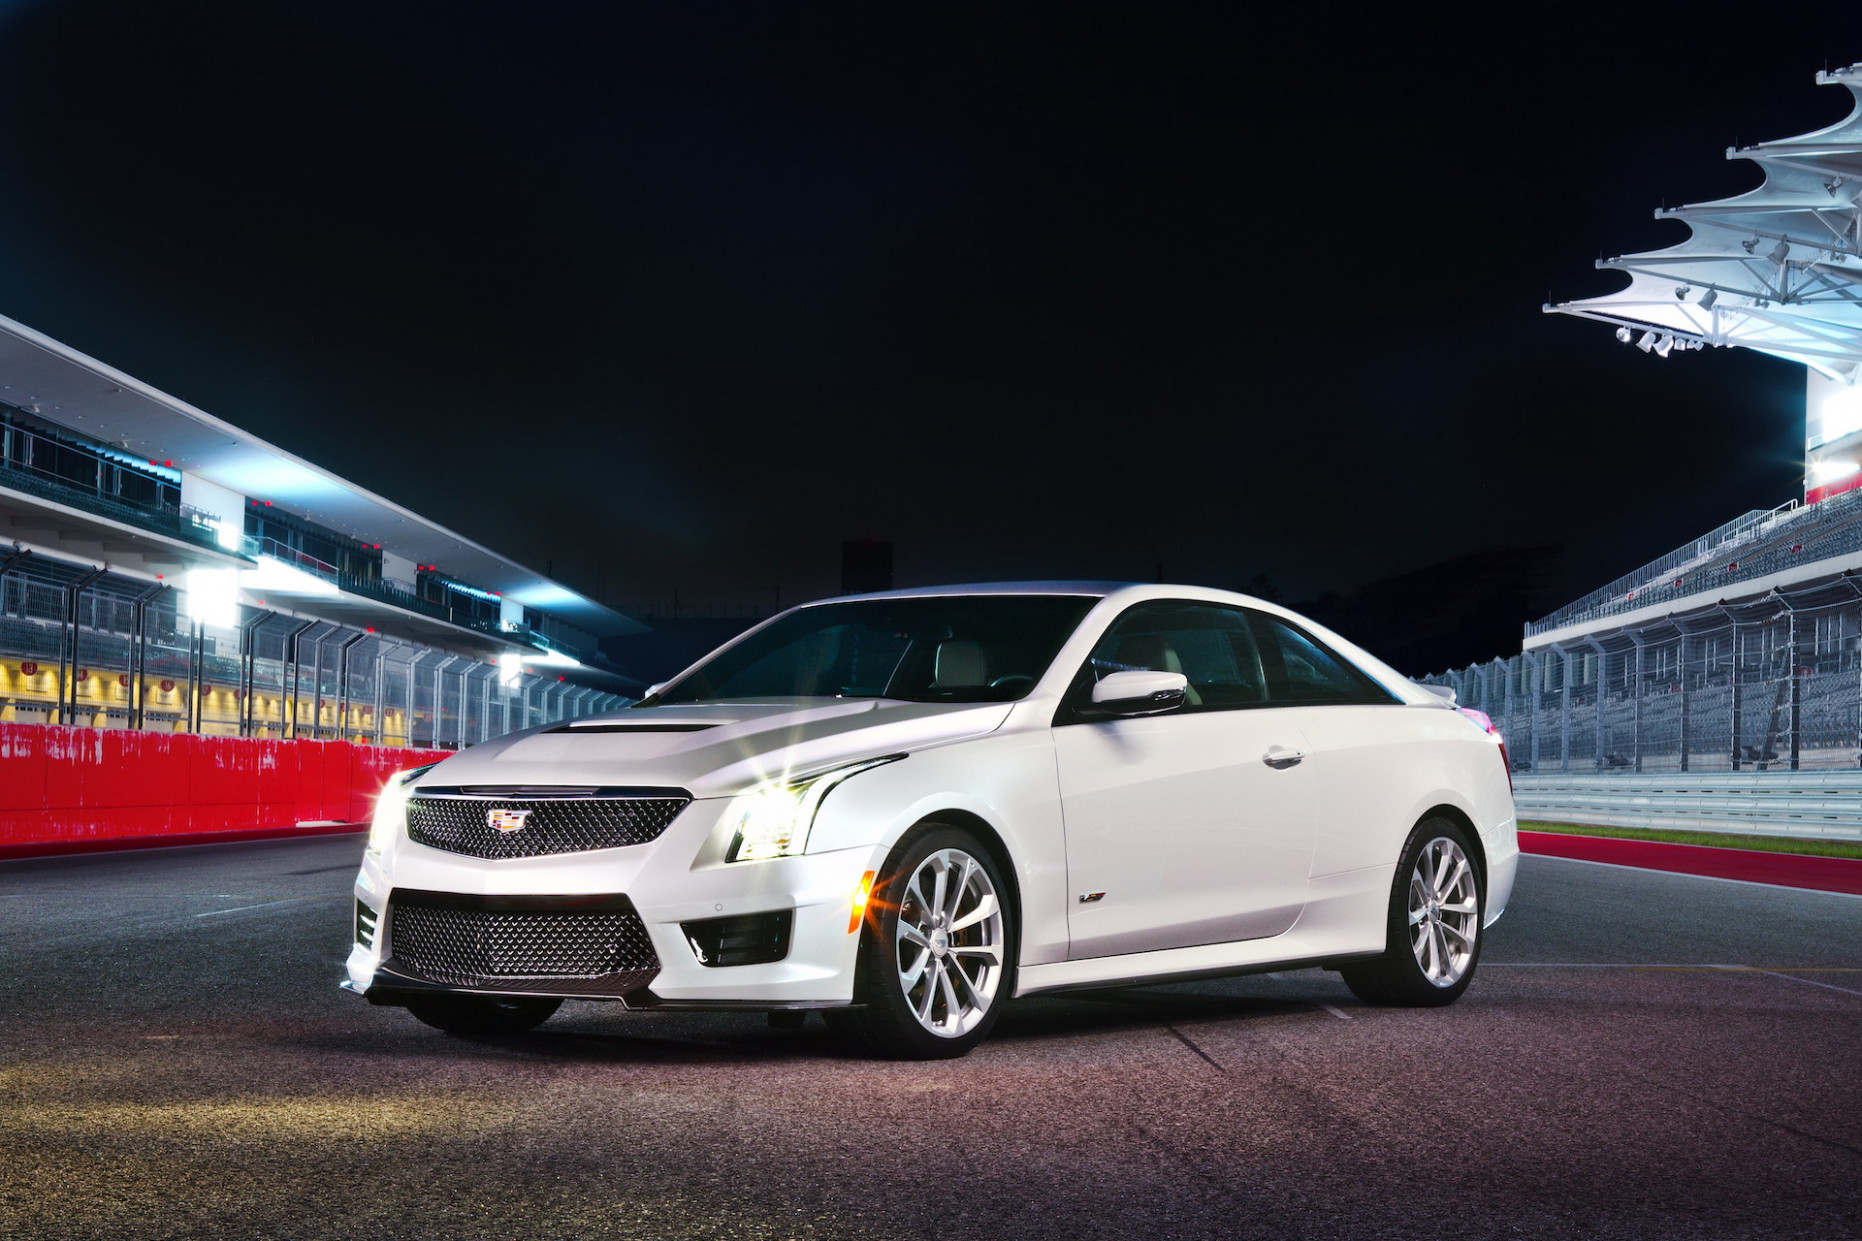 6 Cadillac ATS-V Coupe pricier but better equipped